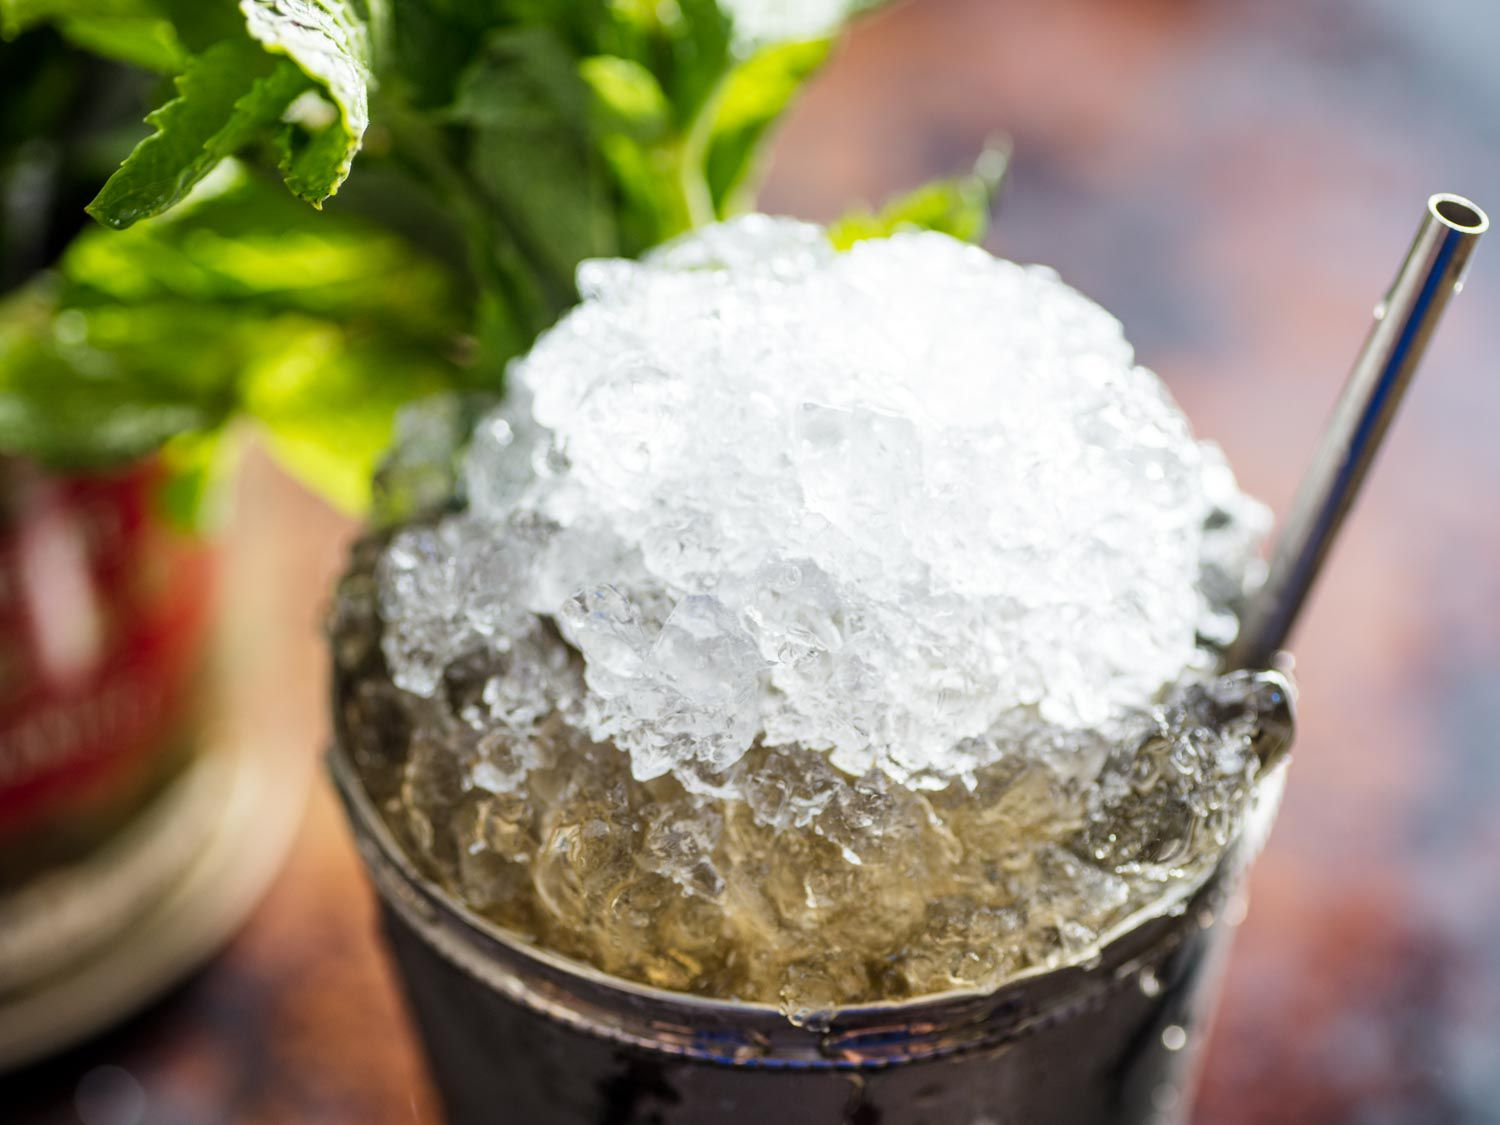 Close-up of a mound of crushed ice on top of a julep cup